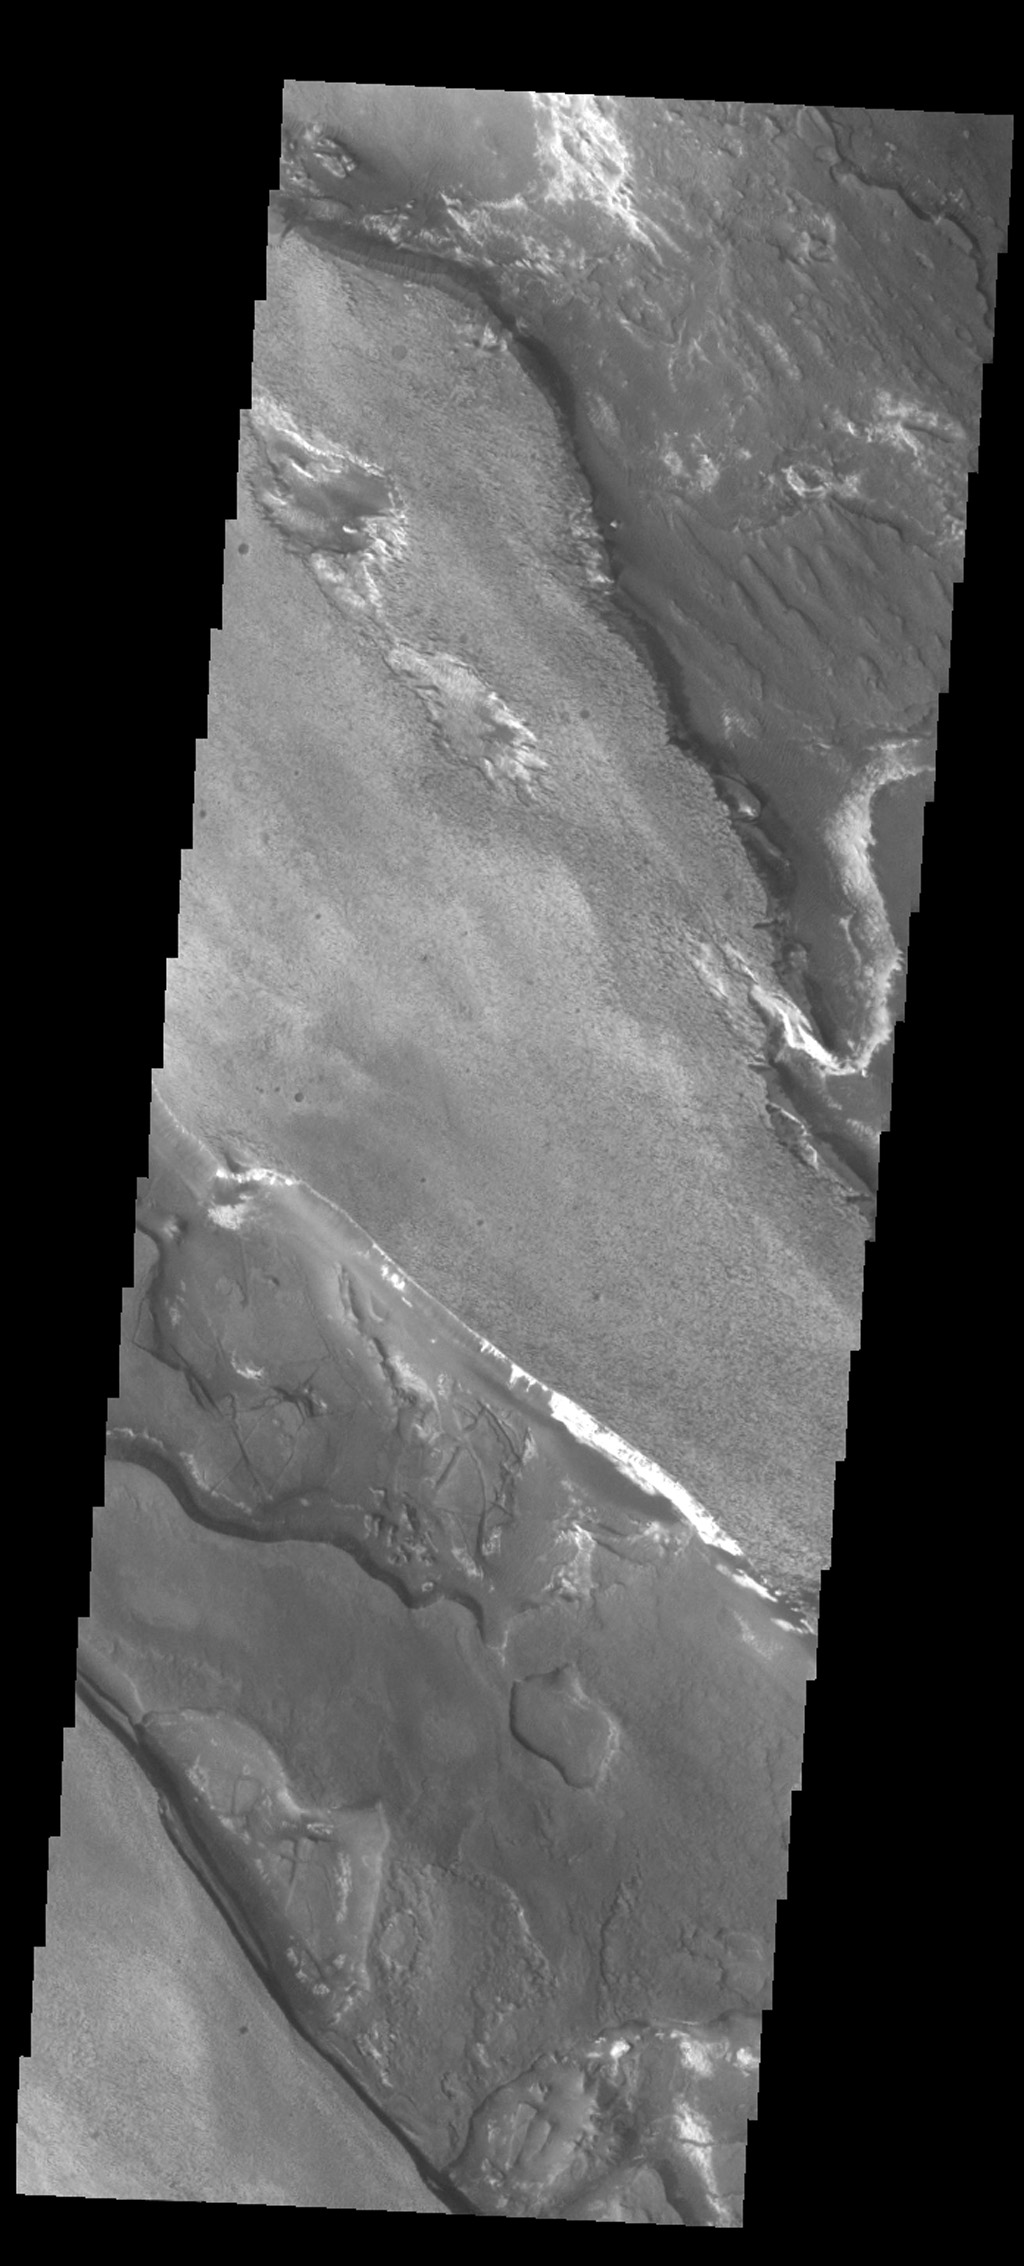 The different layers of material in this occur in Aram Chaos as seen in this image from NASA's 2001 Mars Odyssey spacecraft.